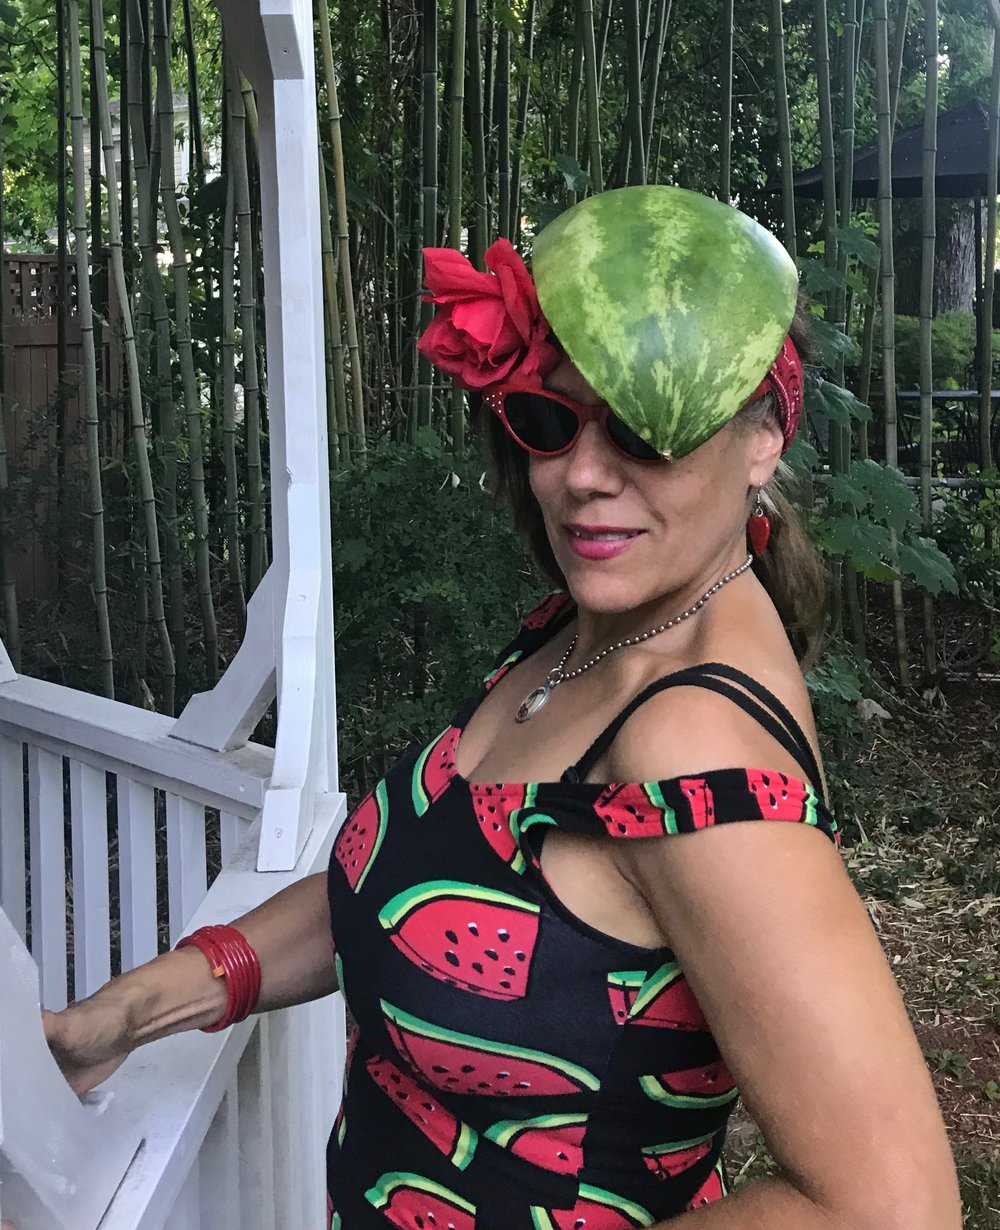 We are not men. We are Watermelon